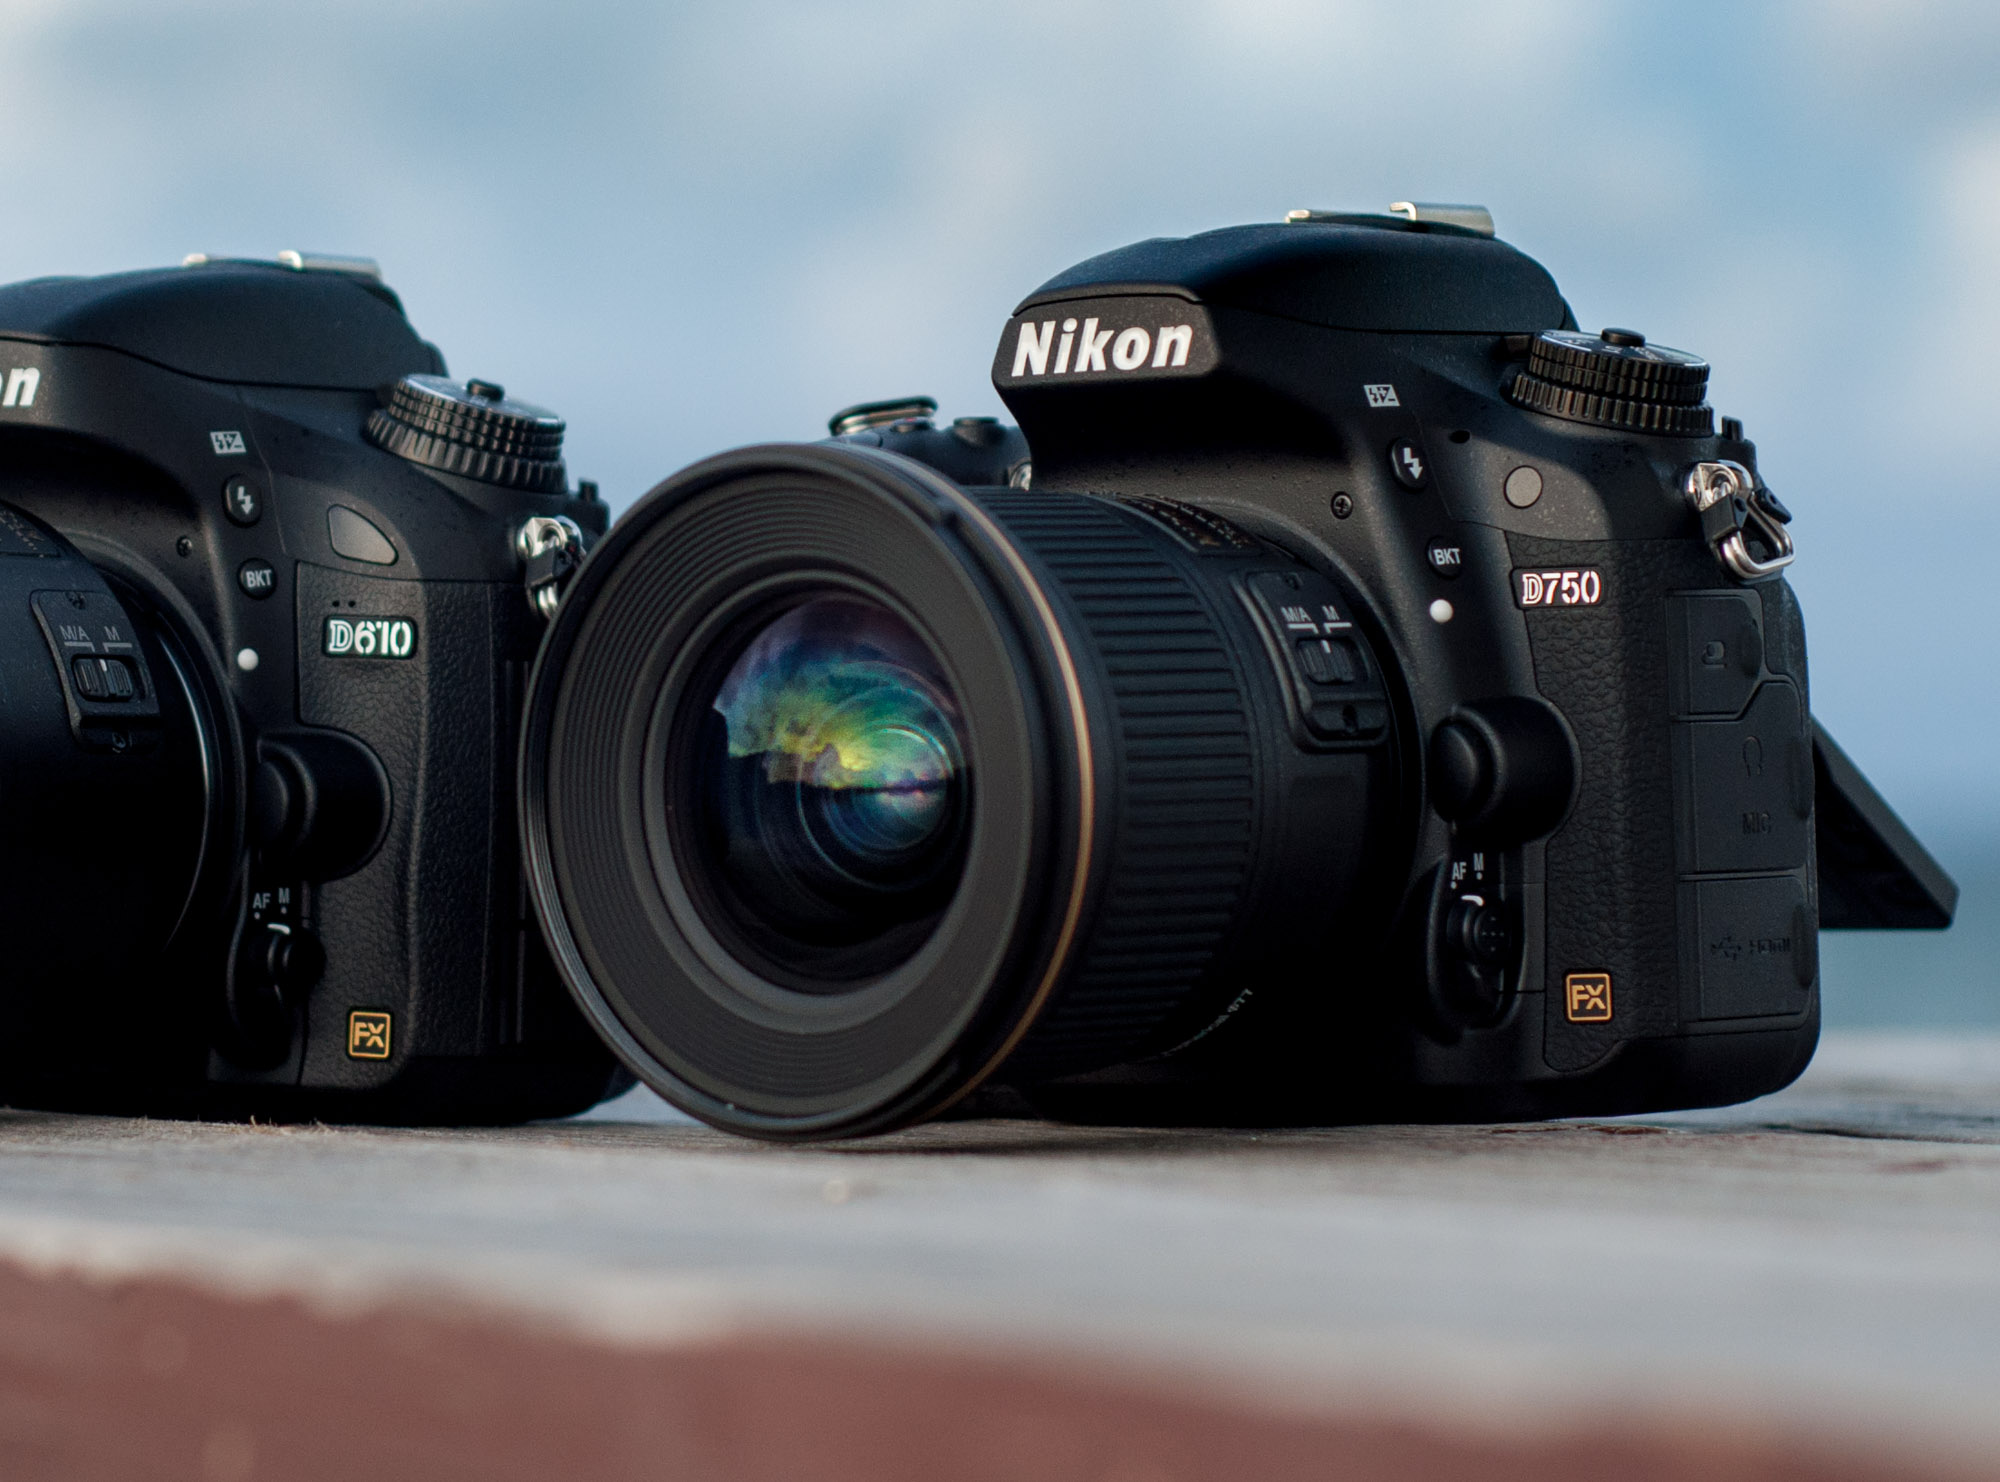 Peaceably Nikon G Review Anor Nearly G Nikon D750 Vs D610 Vs D7200 Nikon D750 Vs D610 Vs D810 dpreview Nikon D750 Vs D610